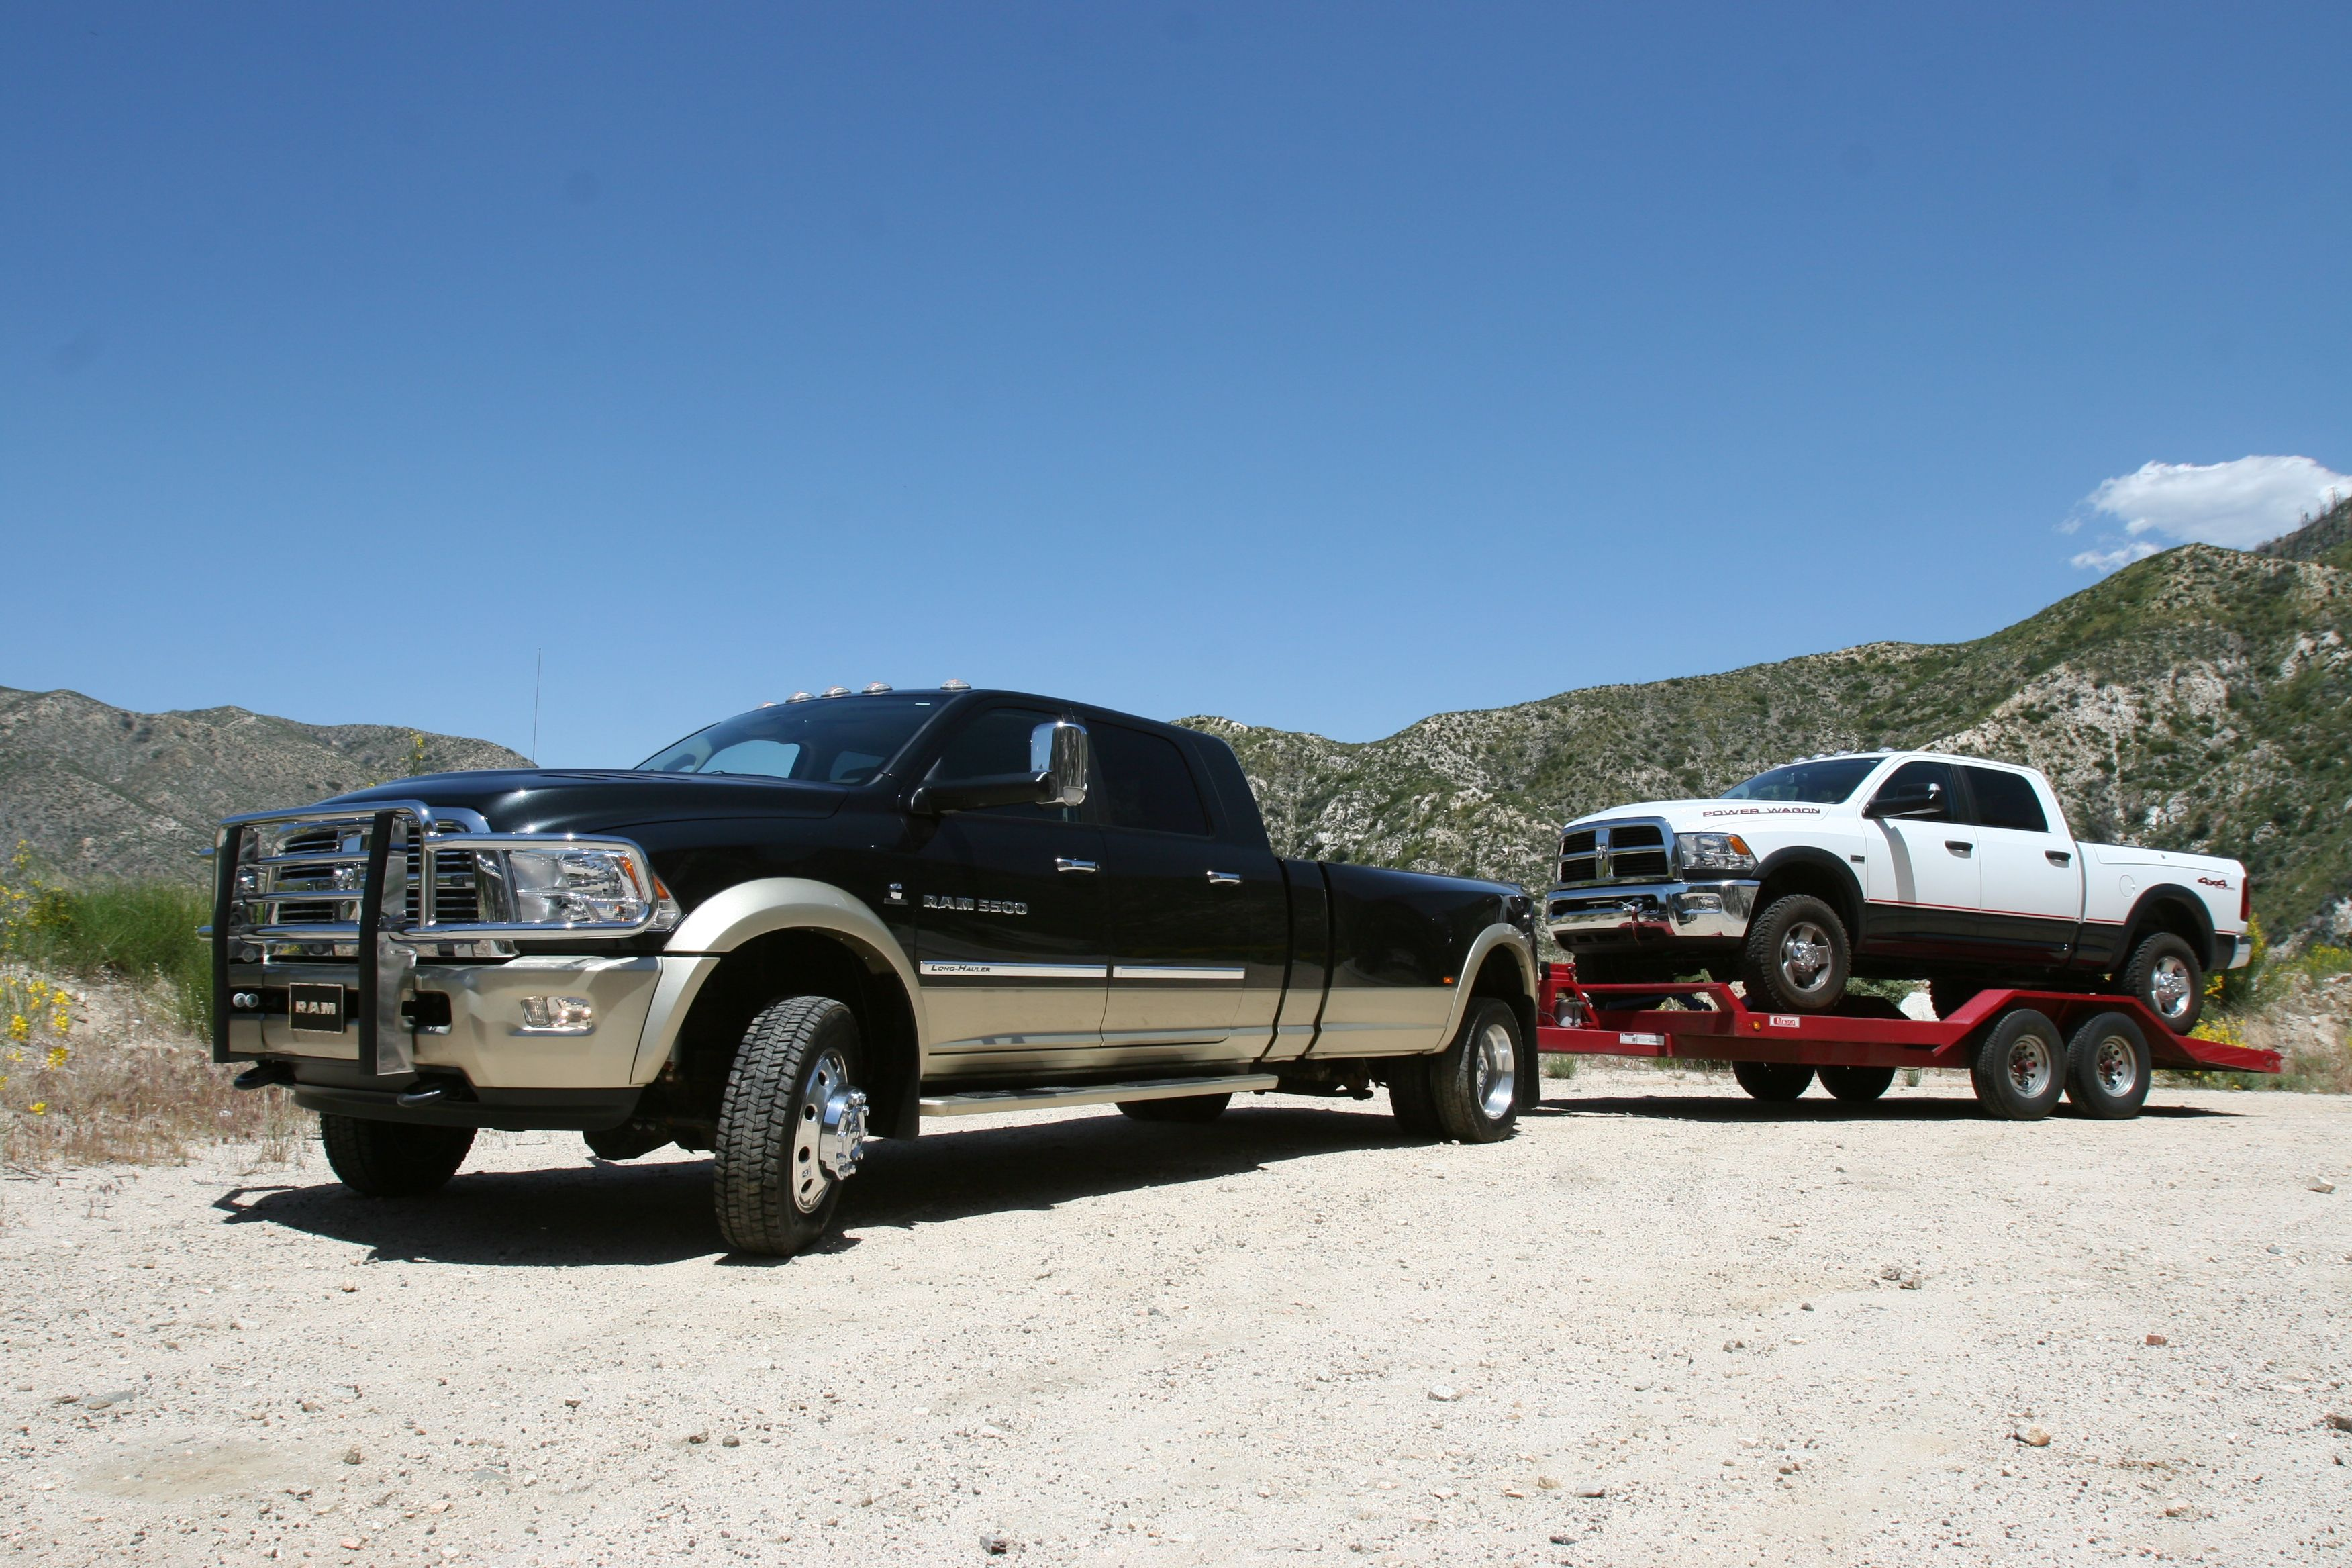 It looks like the ram 5500 long hauler very well may make it as a regular